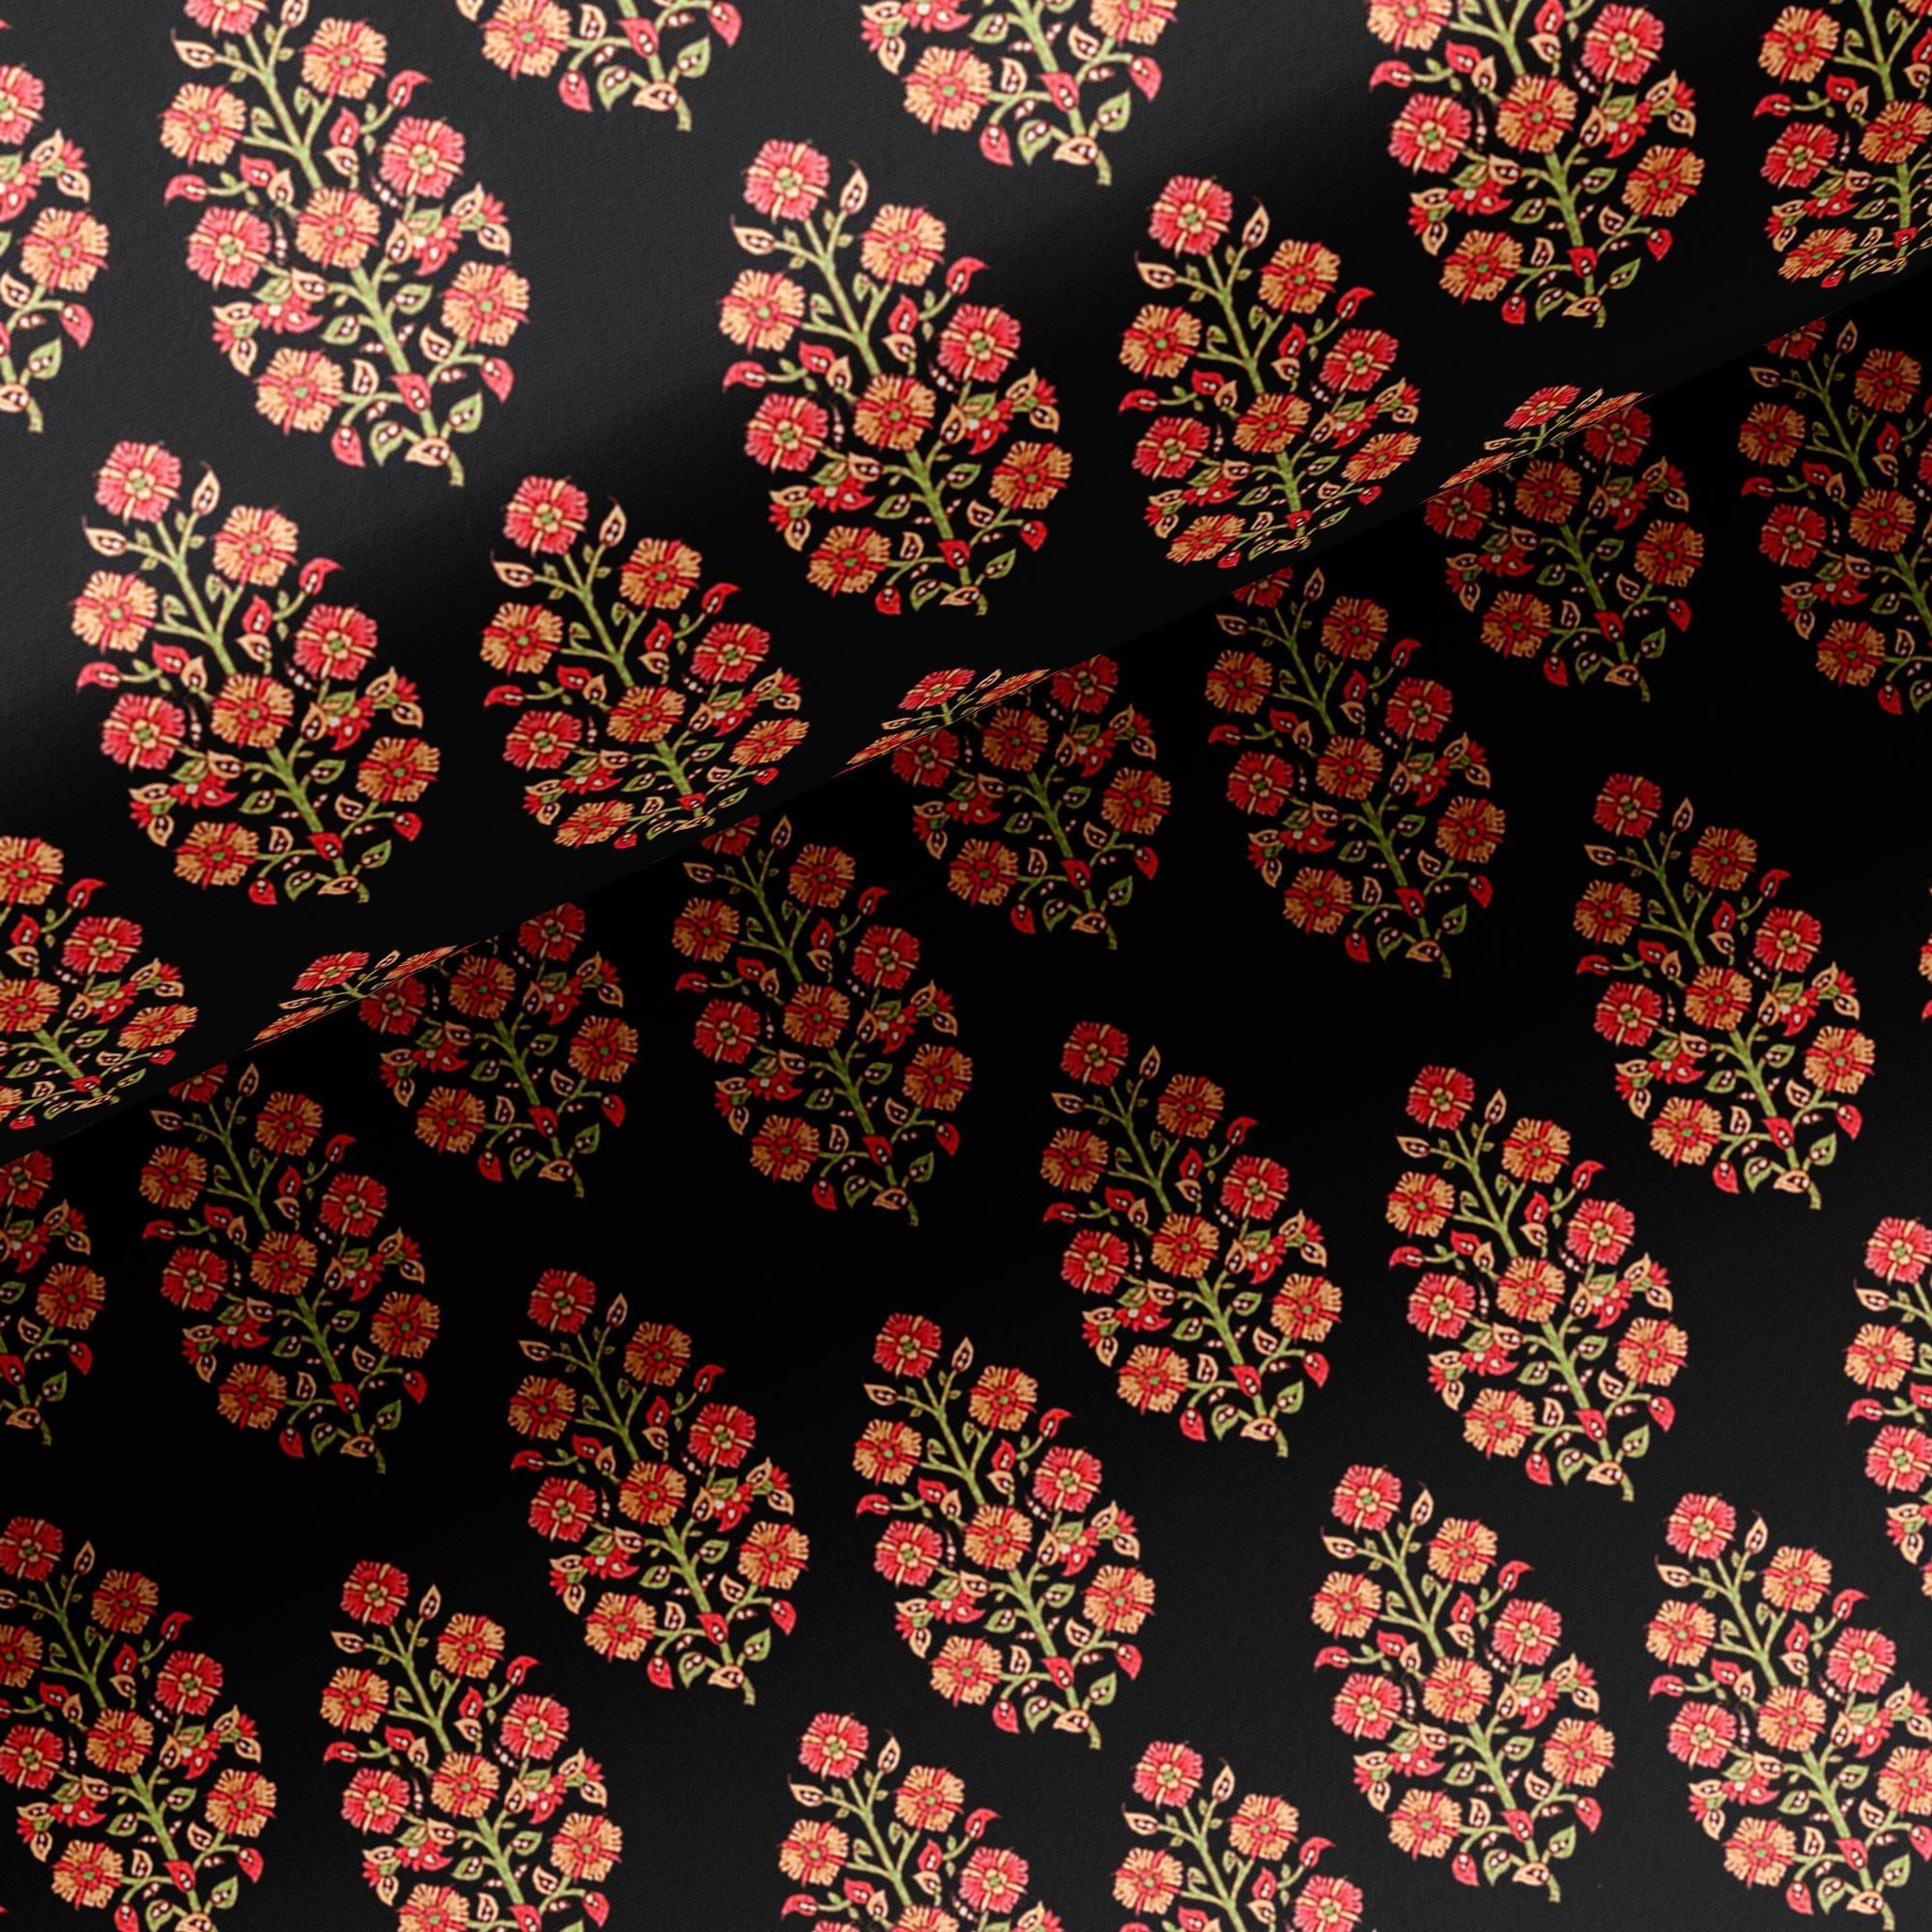 Red Floral Laying Over Black Digital Printed Fabric - FAB VOGUE Studio. Shop Fabric @ www.fabvoguestudio.com